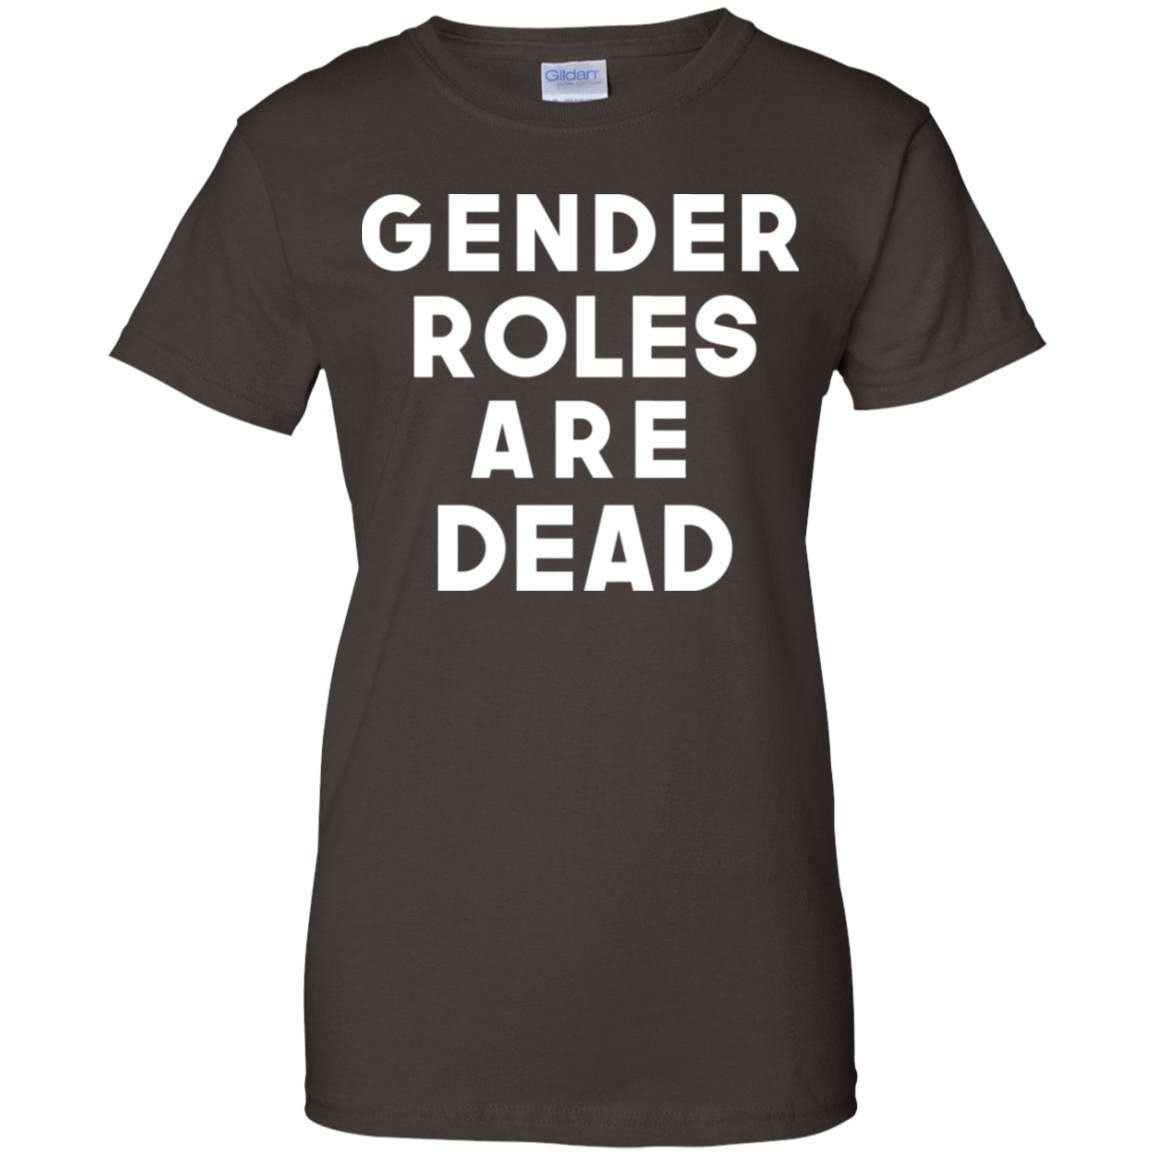 Gender Roles Are Dead 939-9251-74046225-44702 - Tee Ript